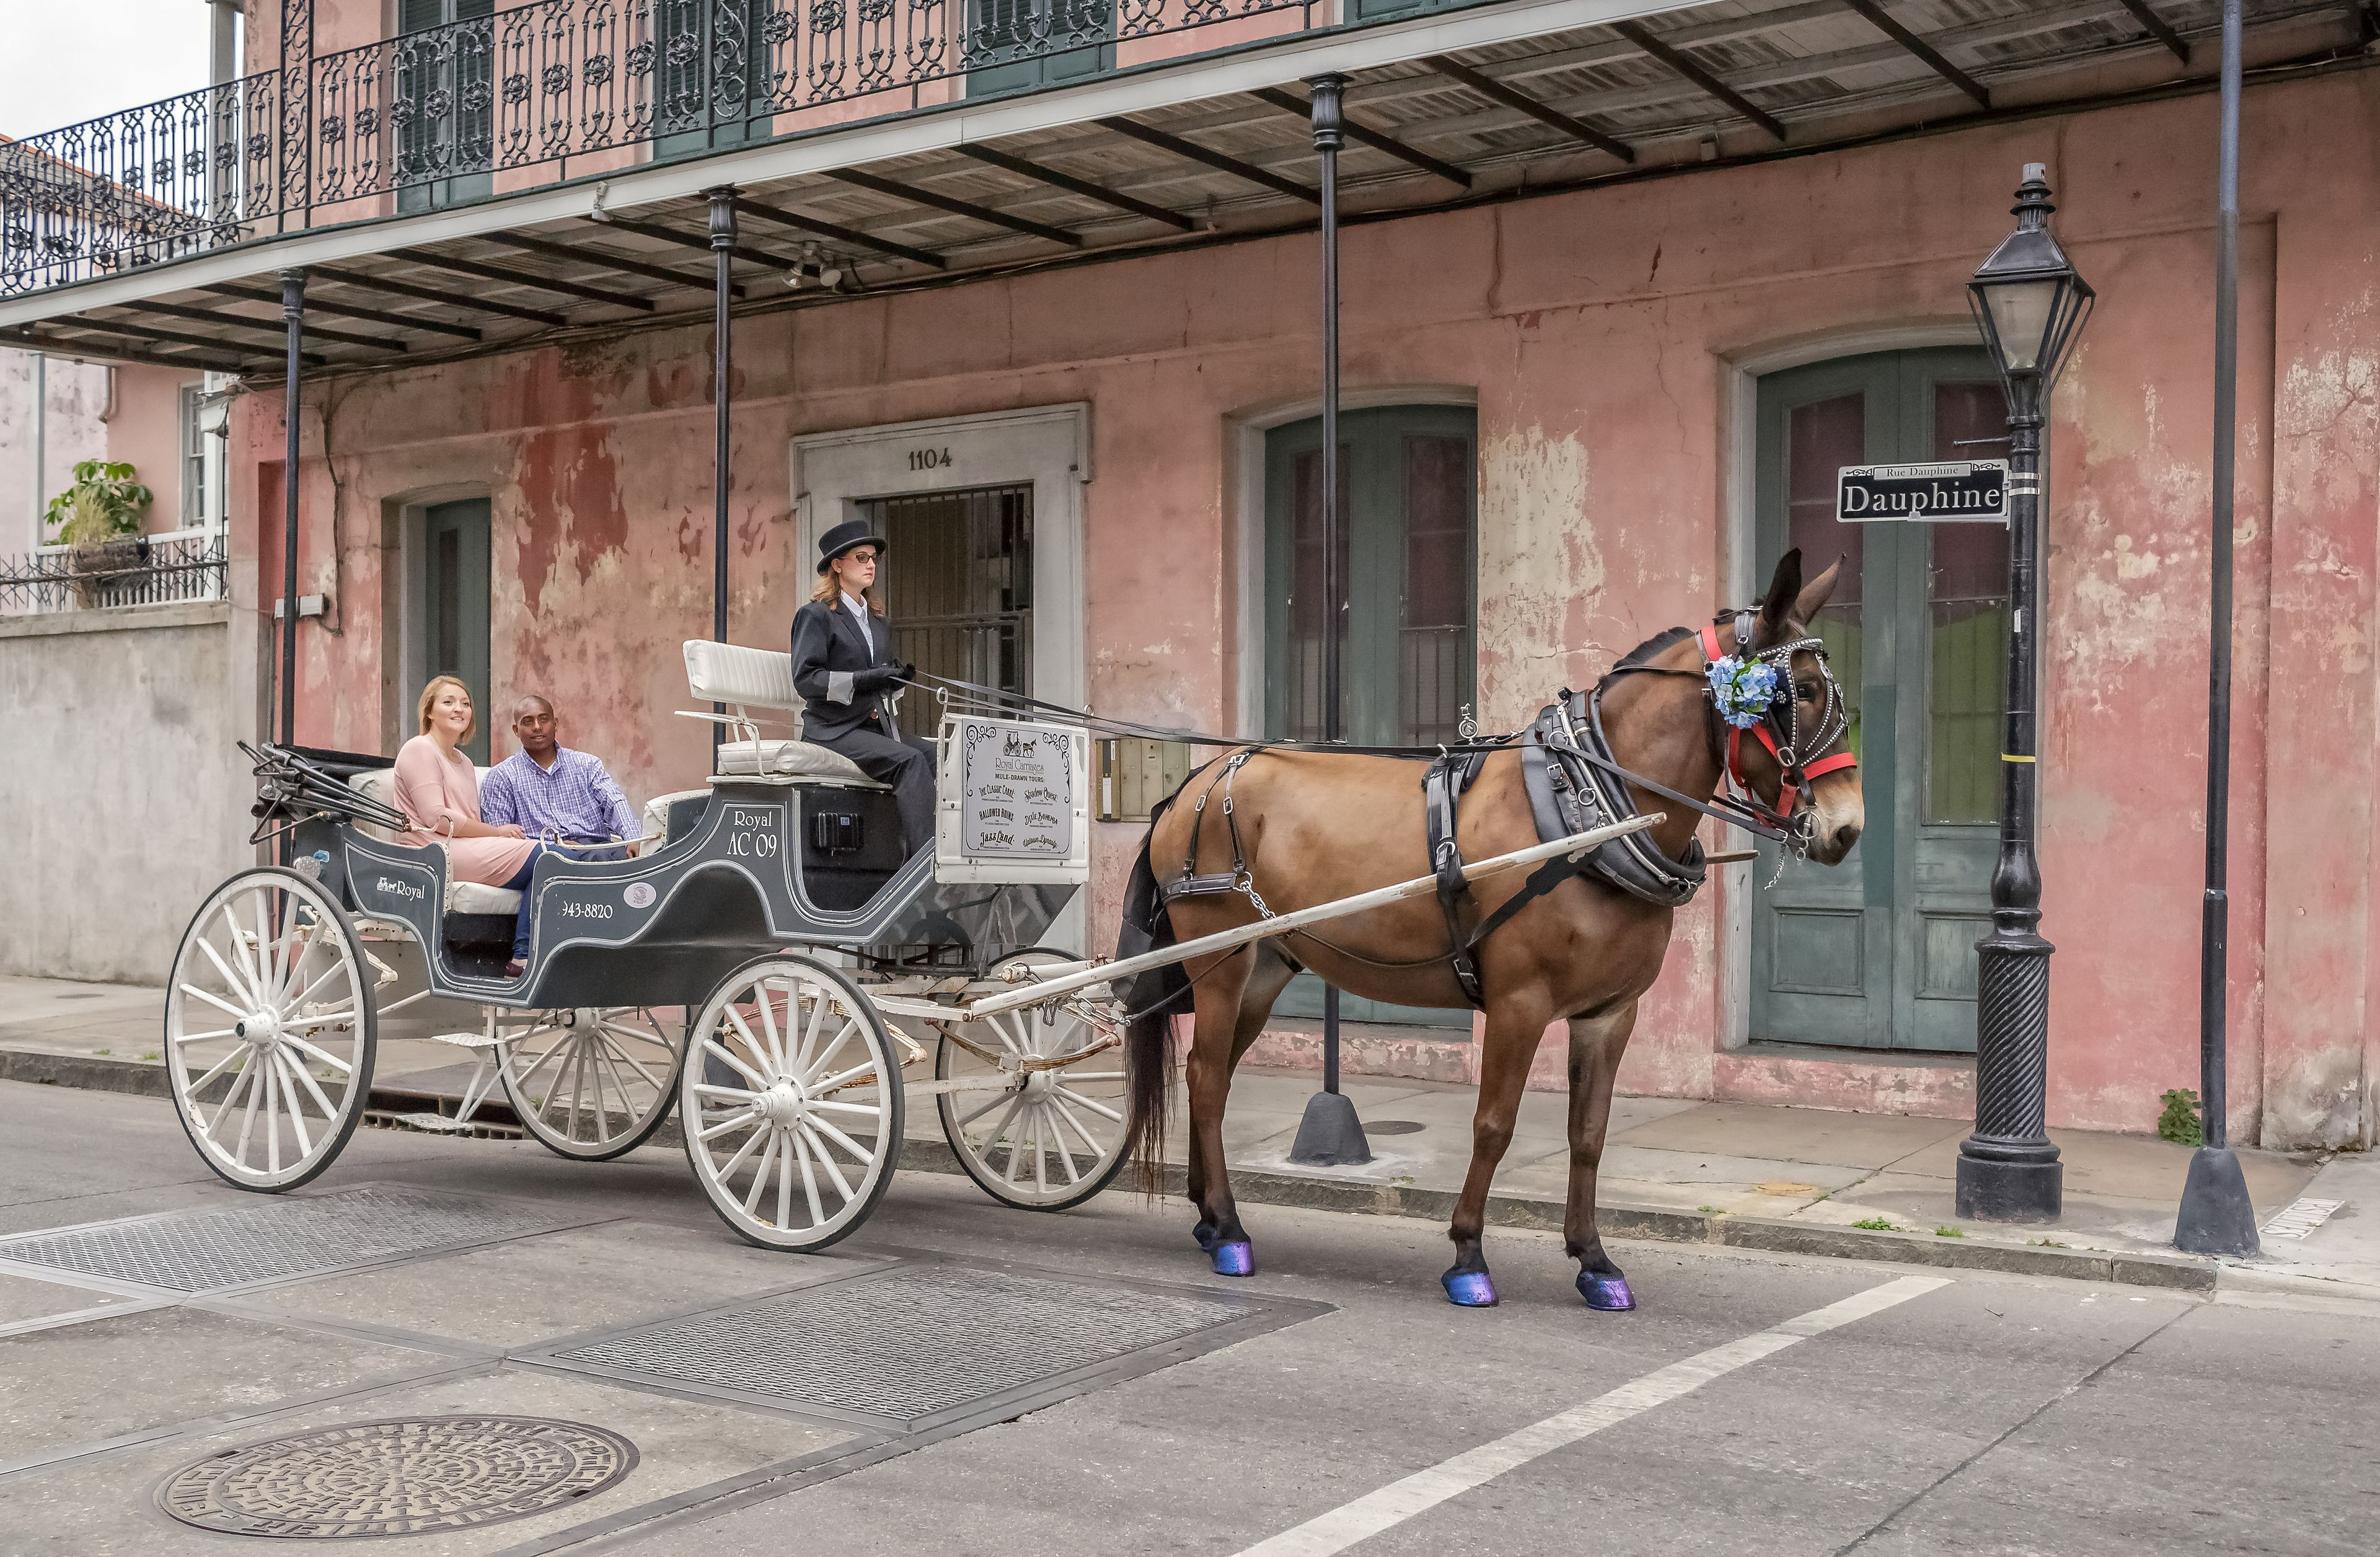 Horse-drawn carriage in the French Quarter of New Orleans